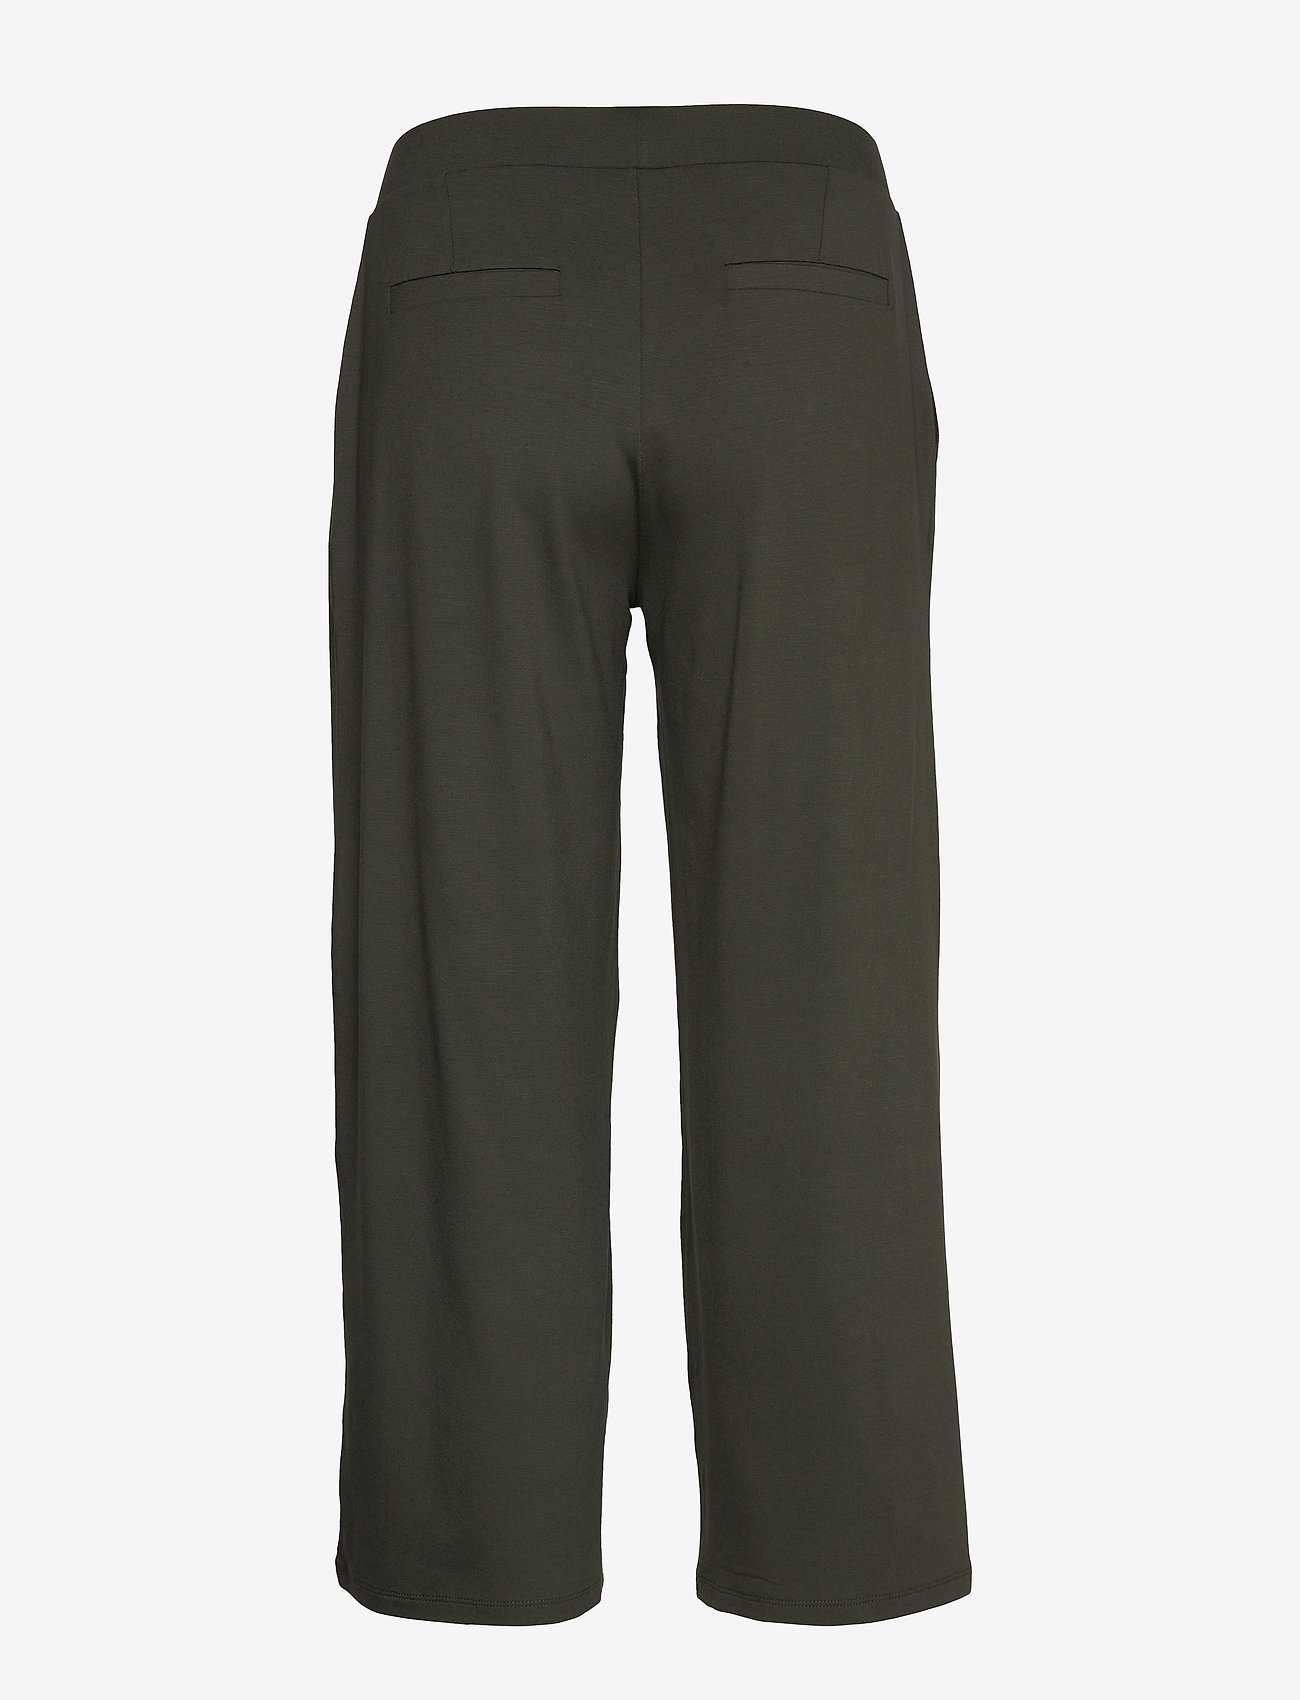 Gerry Weber Edition TROUSERS KNITTED FAB- Pantalons ftee9kDL 3szci EF5QaMax